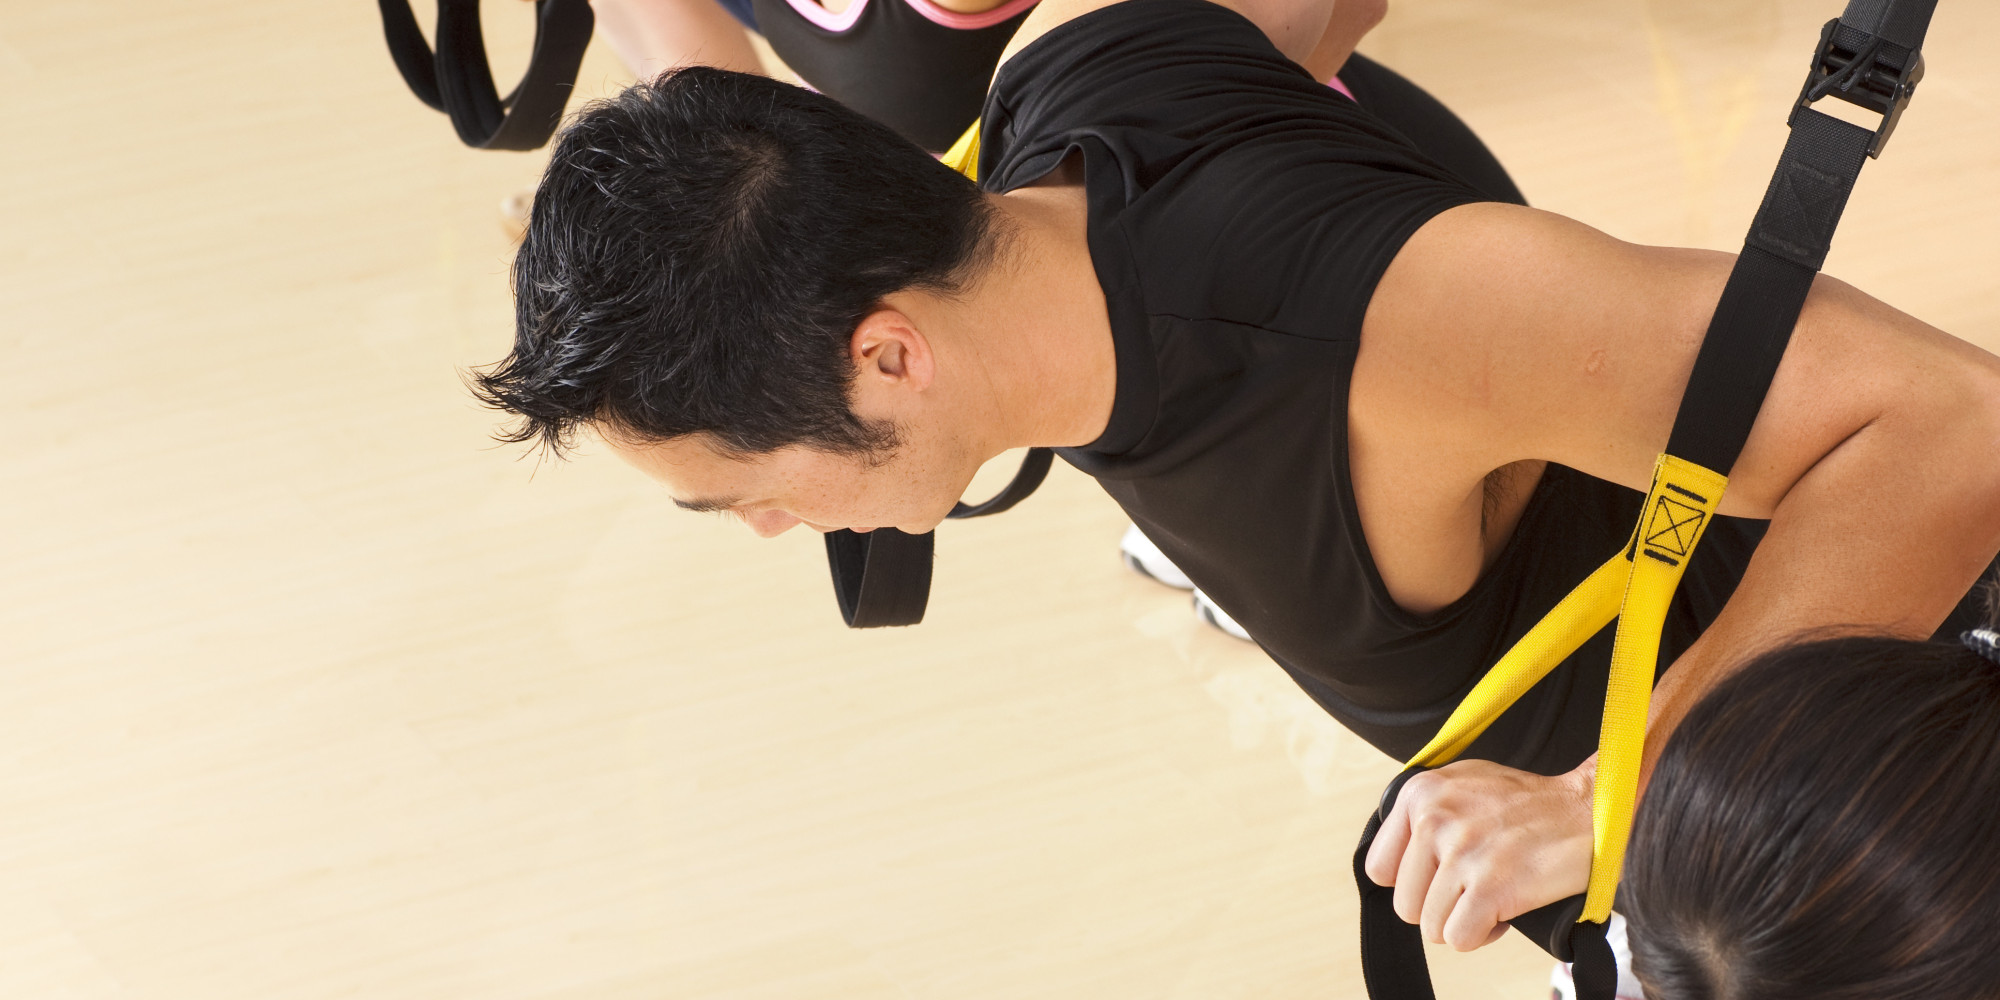 8 TRX Exercises To Build Strength